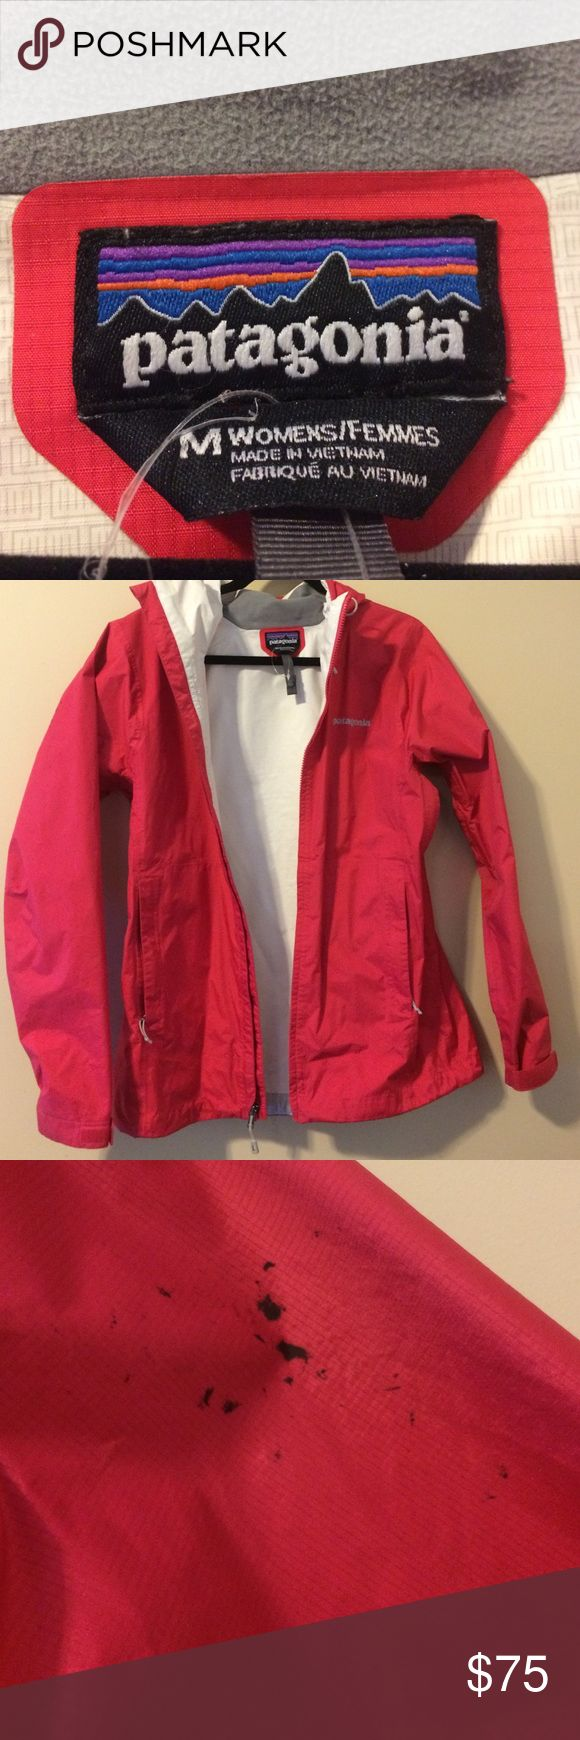 Patagonia 🎉sale🎉 Pink Rain Jacket Pink Patagonia Rain Jacket in great shape other than one stain, pictured above, on the back of the right arm. I have worn this a few times, but I can't seem to zip it on when I am layered up underneath!  Beautiful Rain Jacket other than the one stain. Patagonia Jackets & Coats